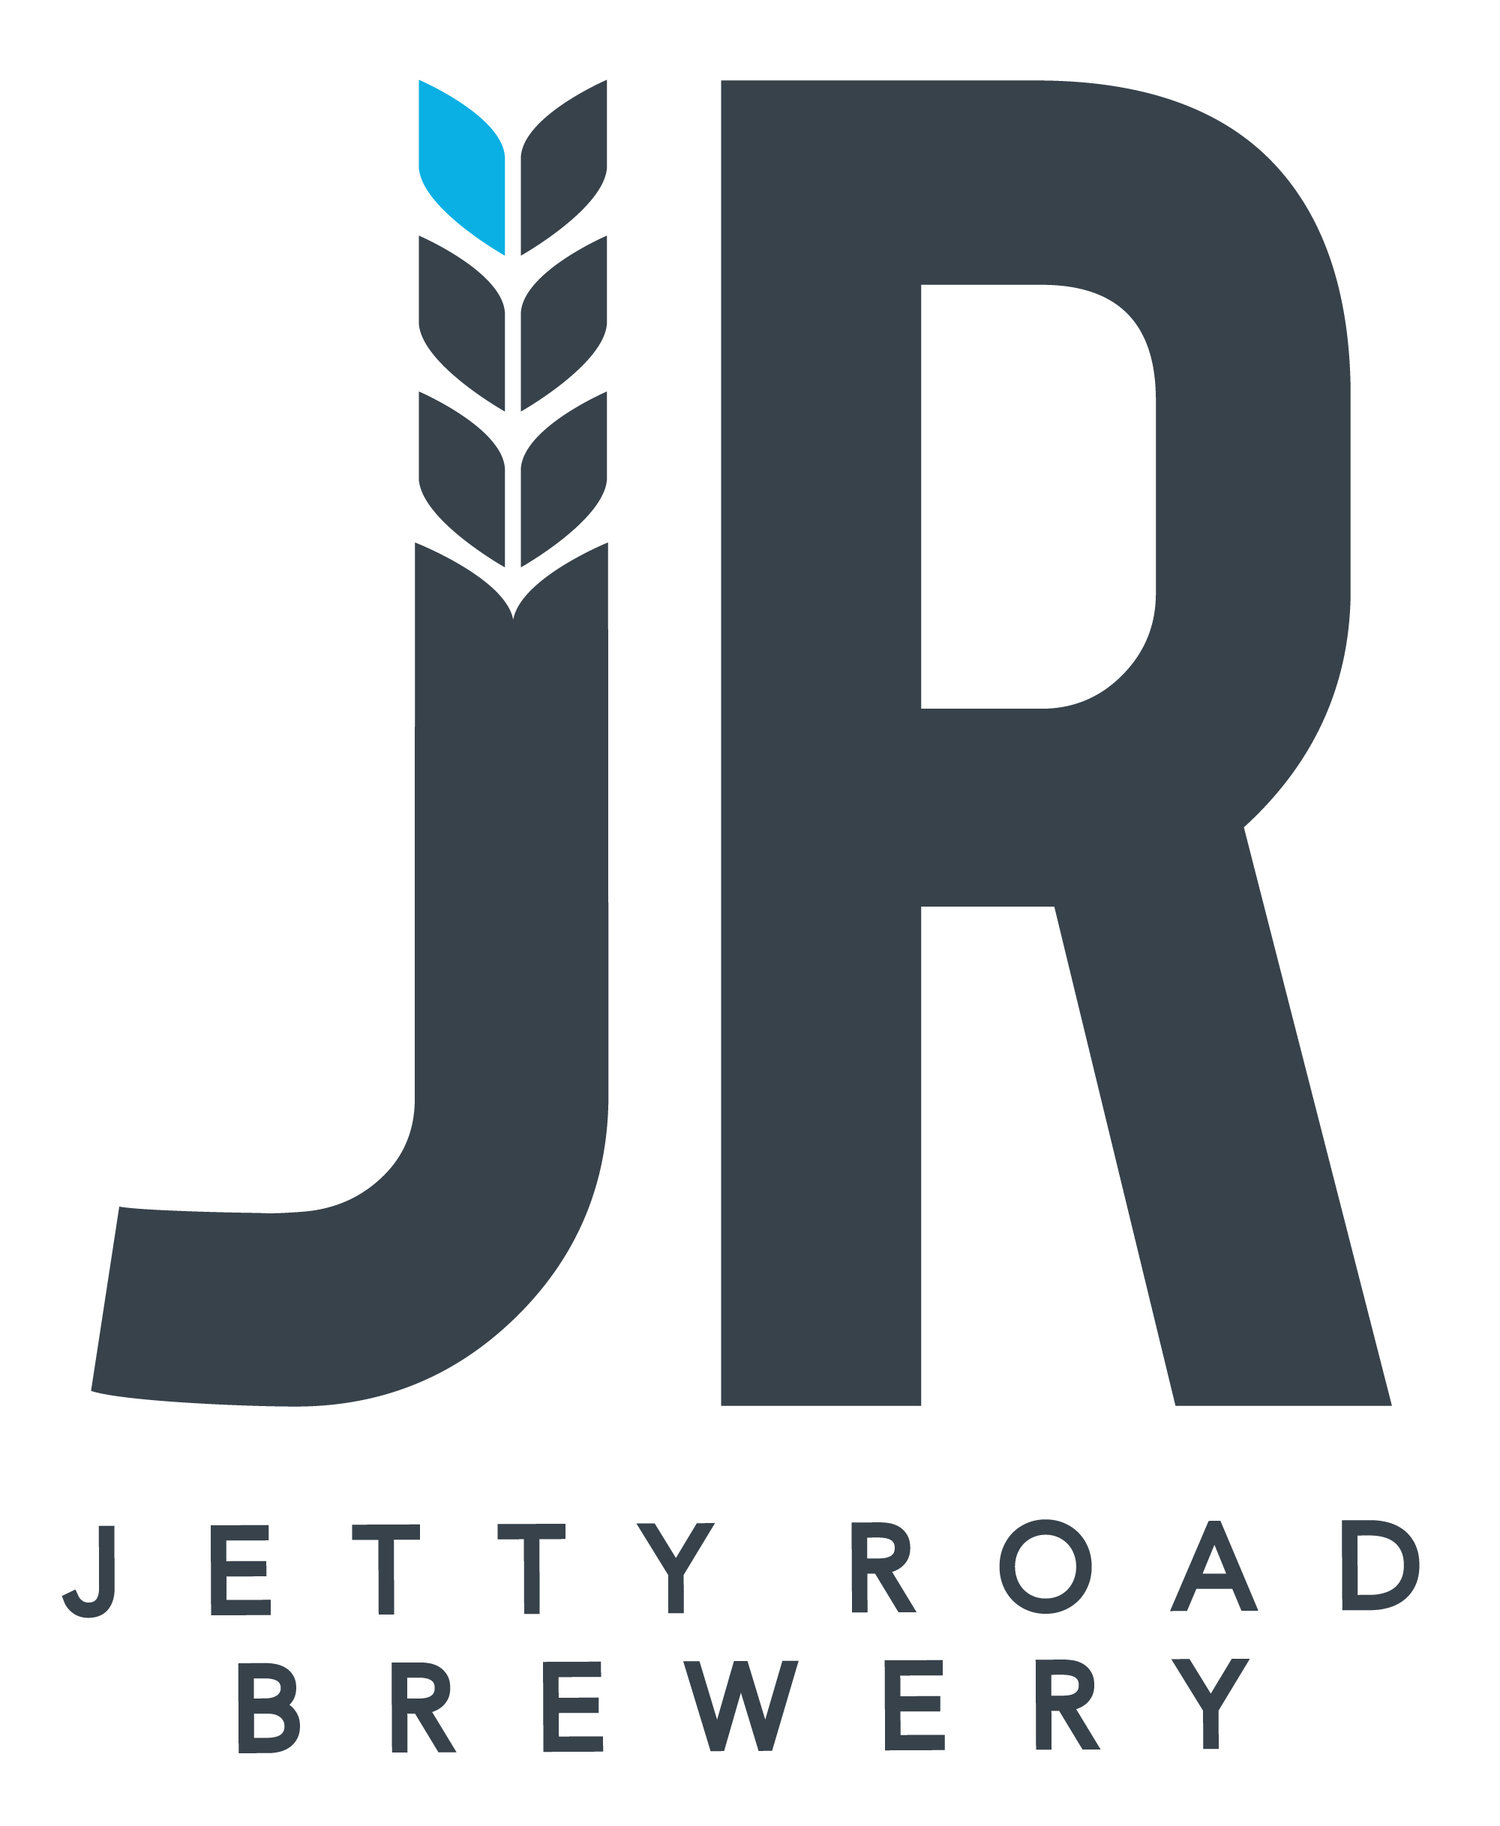 Jetty Road Brewery